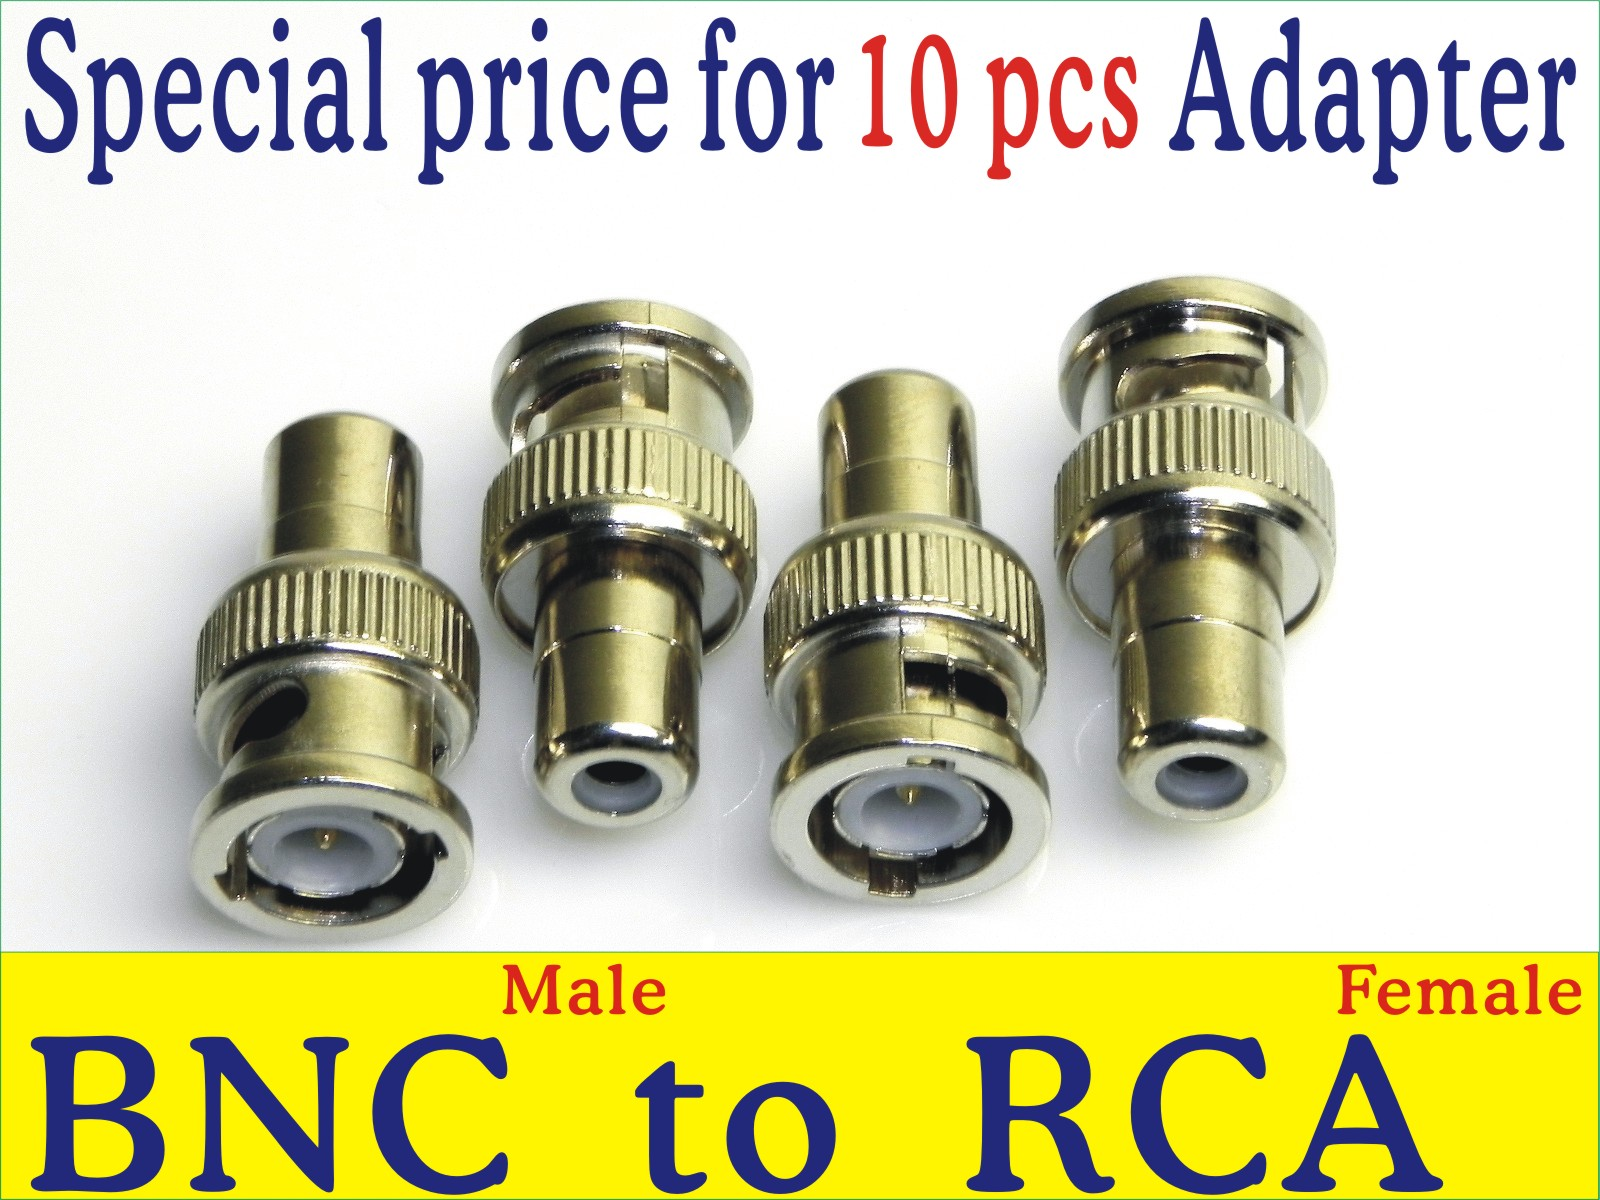 RCA to BNC Adapter, connect CCTV Camera to DVR system, 10 pcs